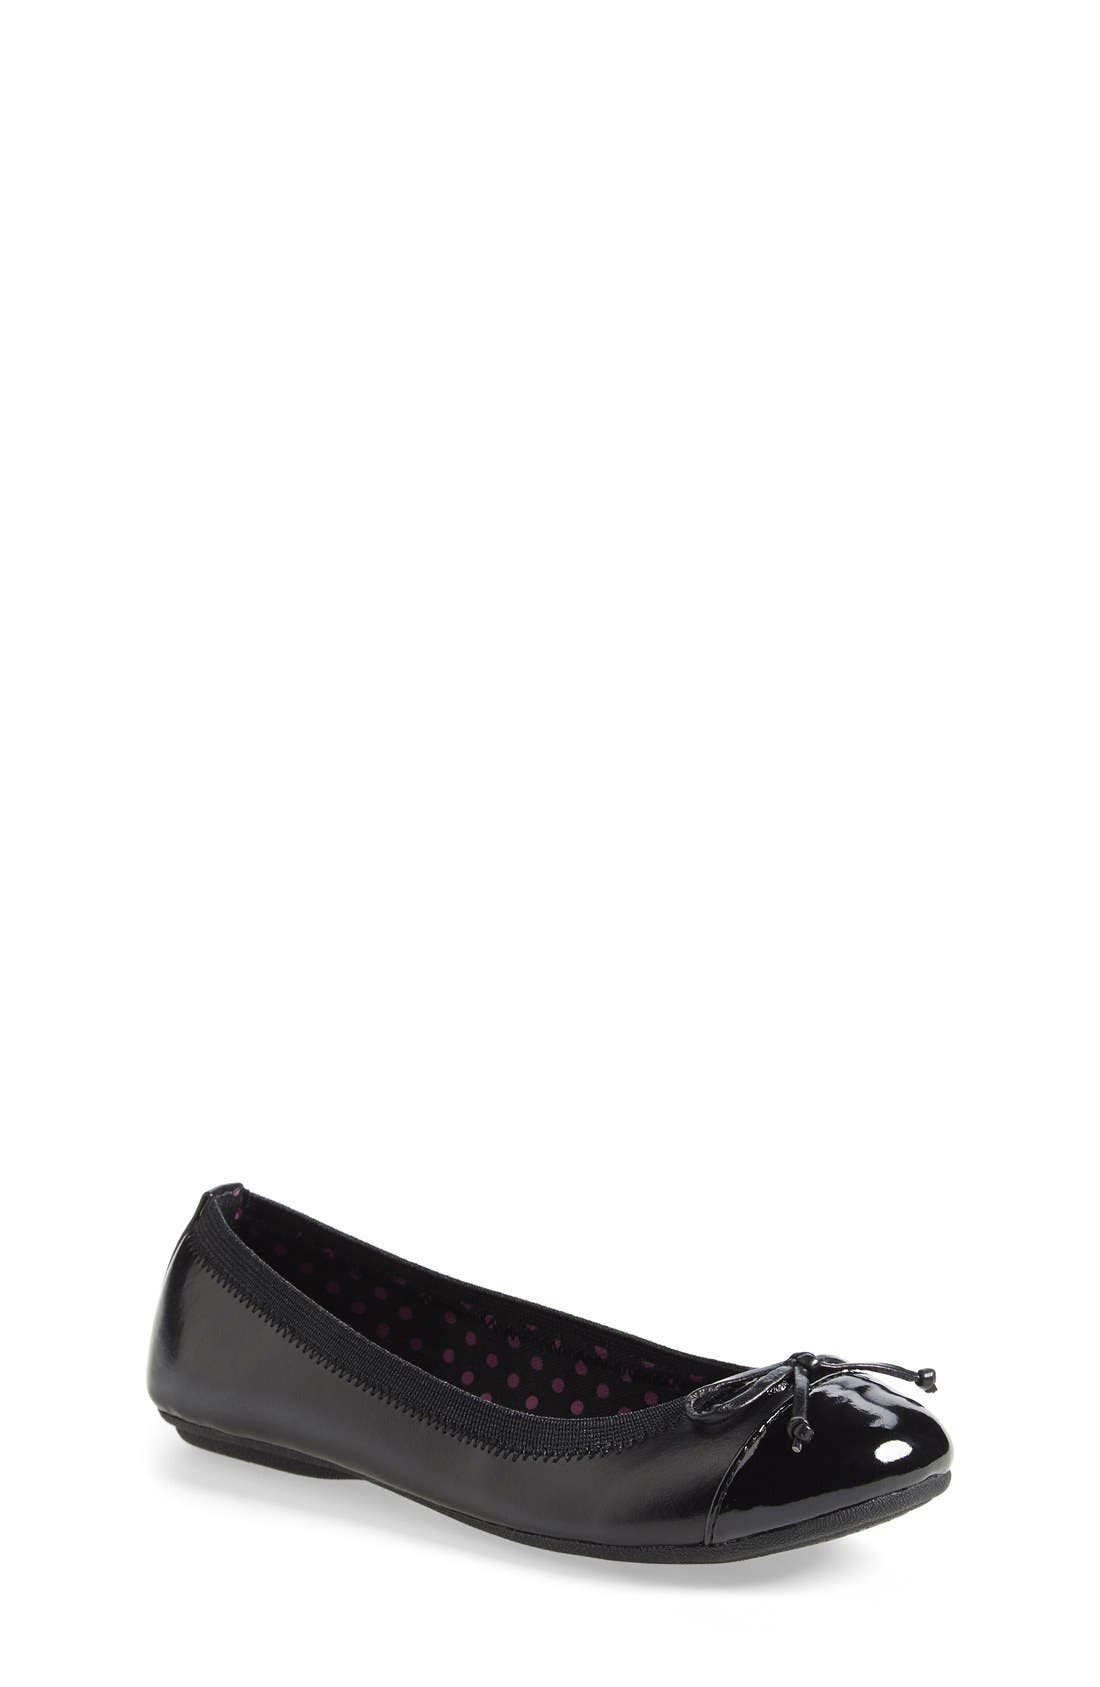 'Elise' Flat,                         Main,                         color, Black Faux Leather